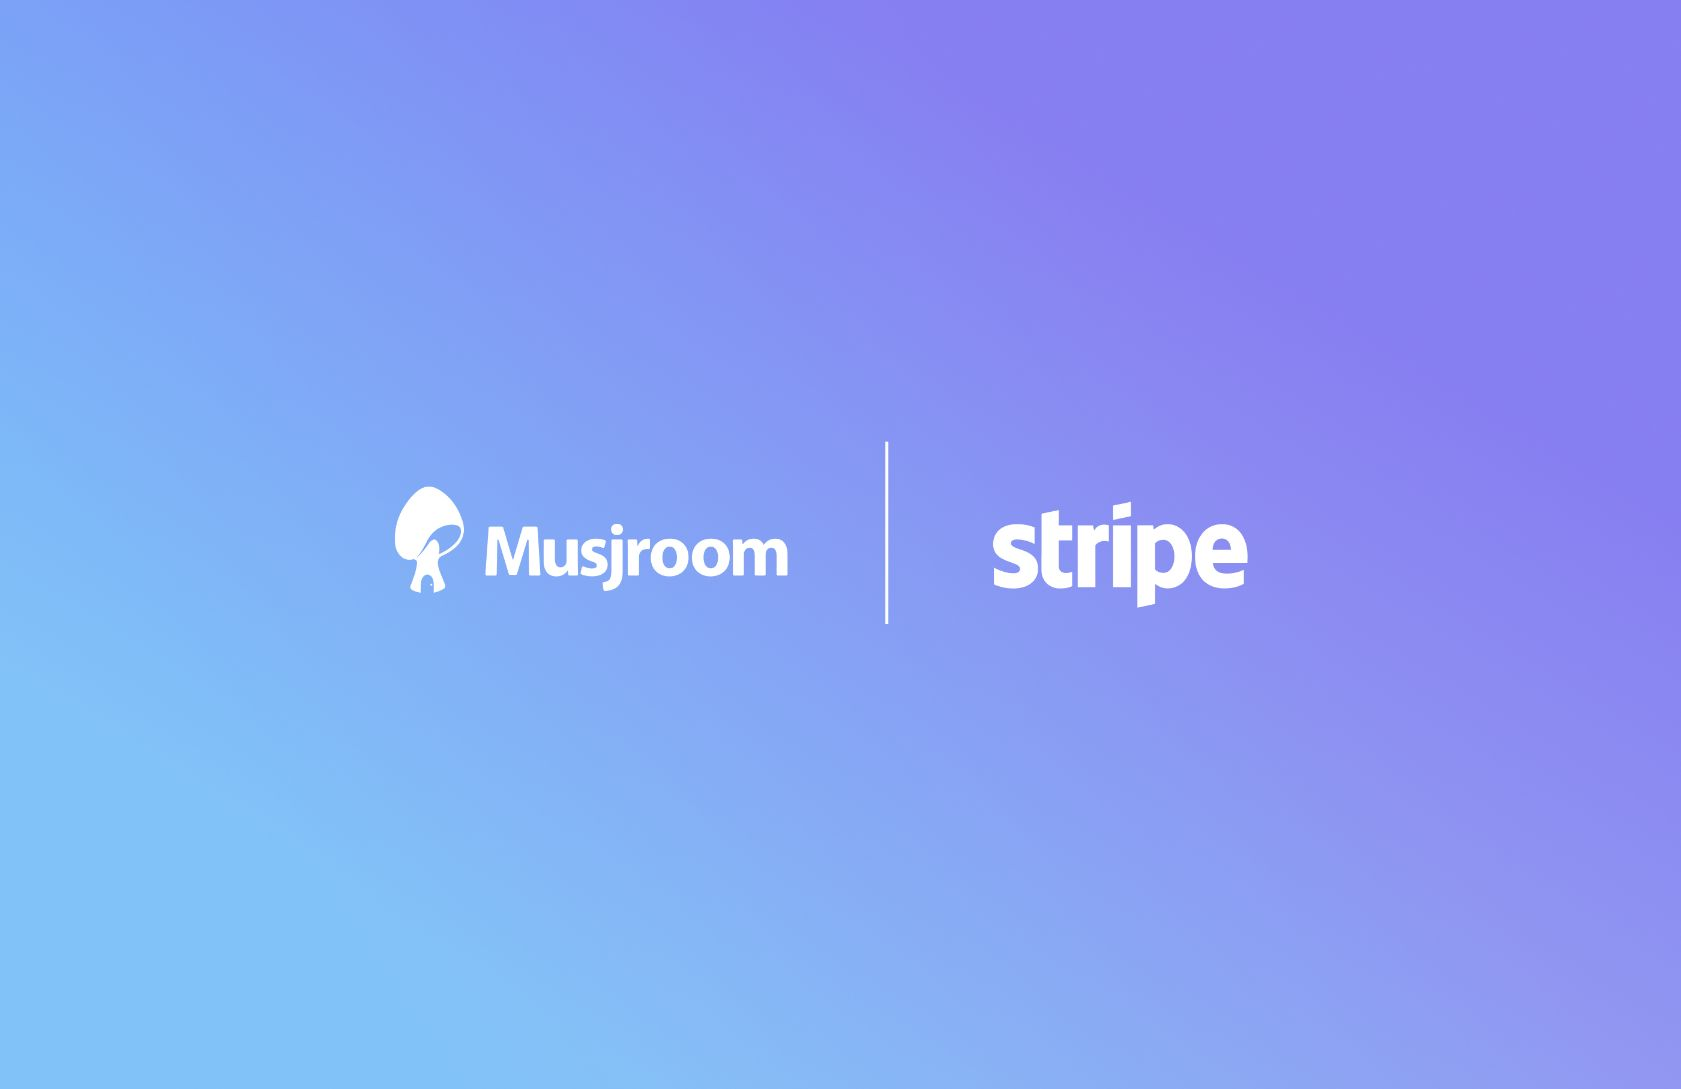 Musjroom chooses Stripe as their payment gateway